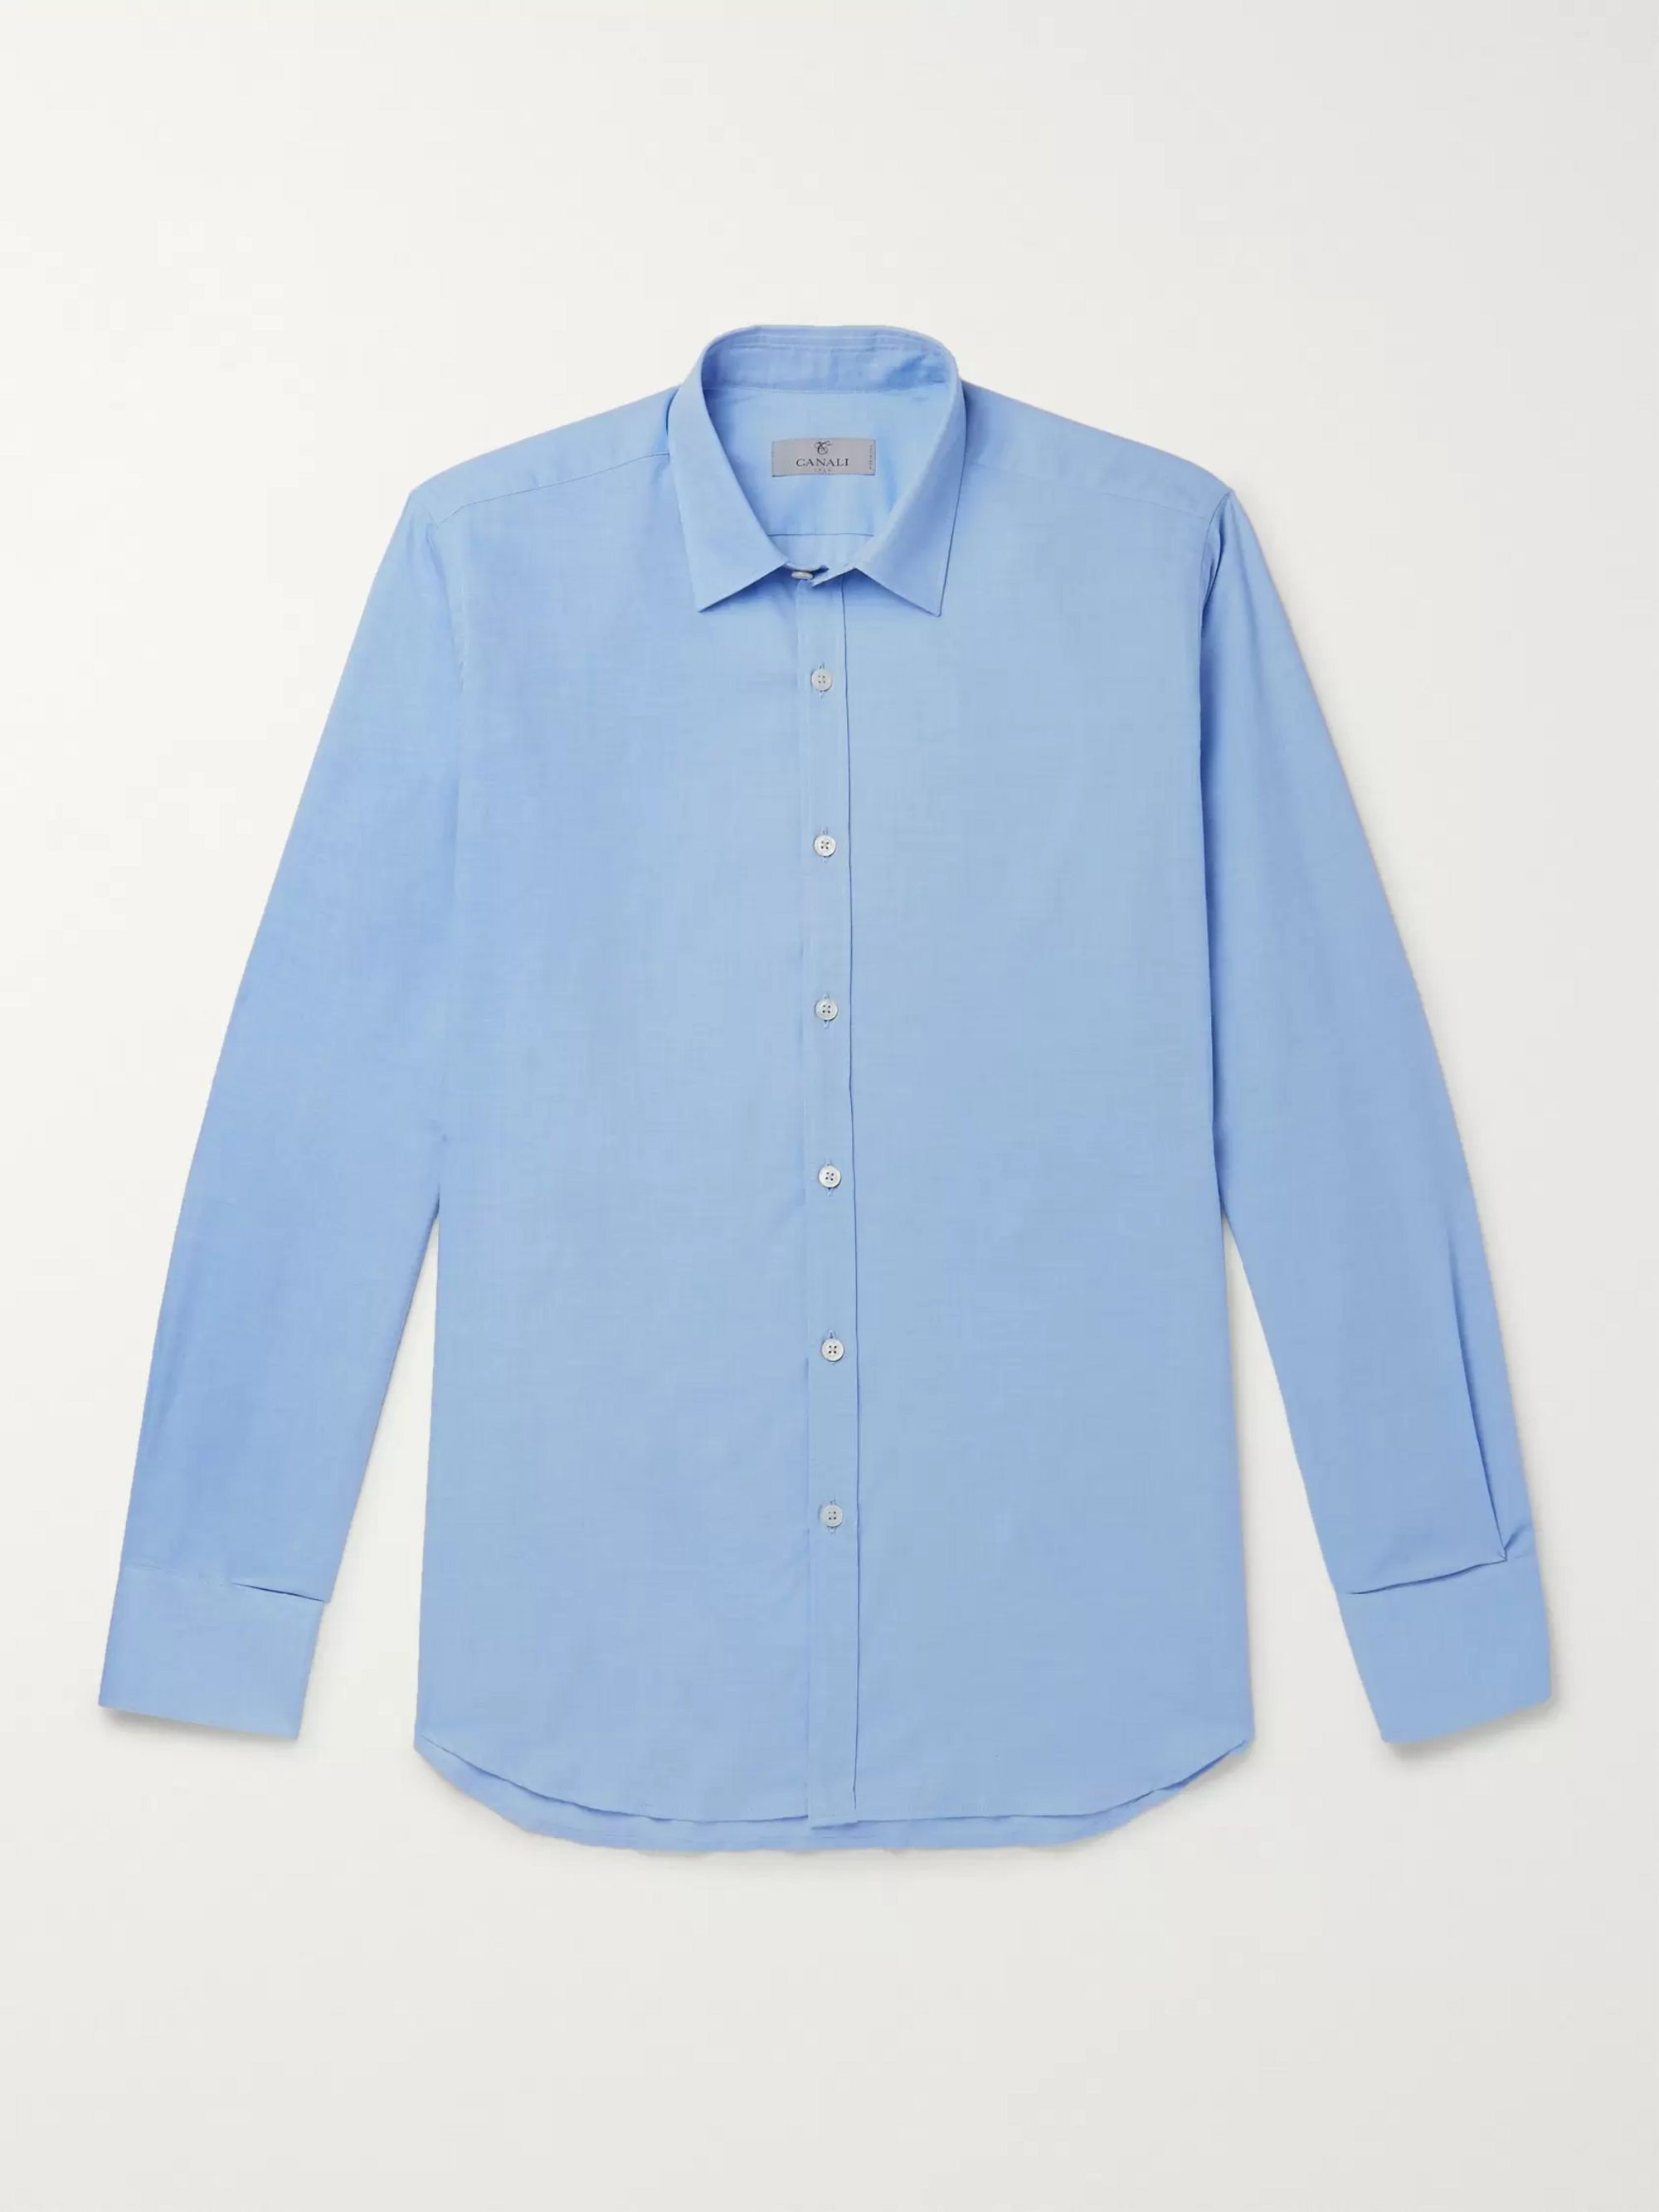 Canali Blue Cotton and Cashmere-Blend Shirt